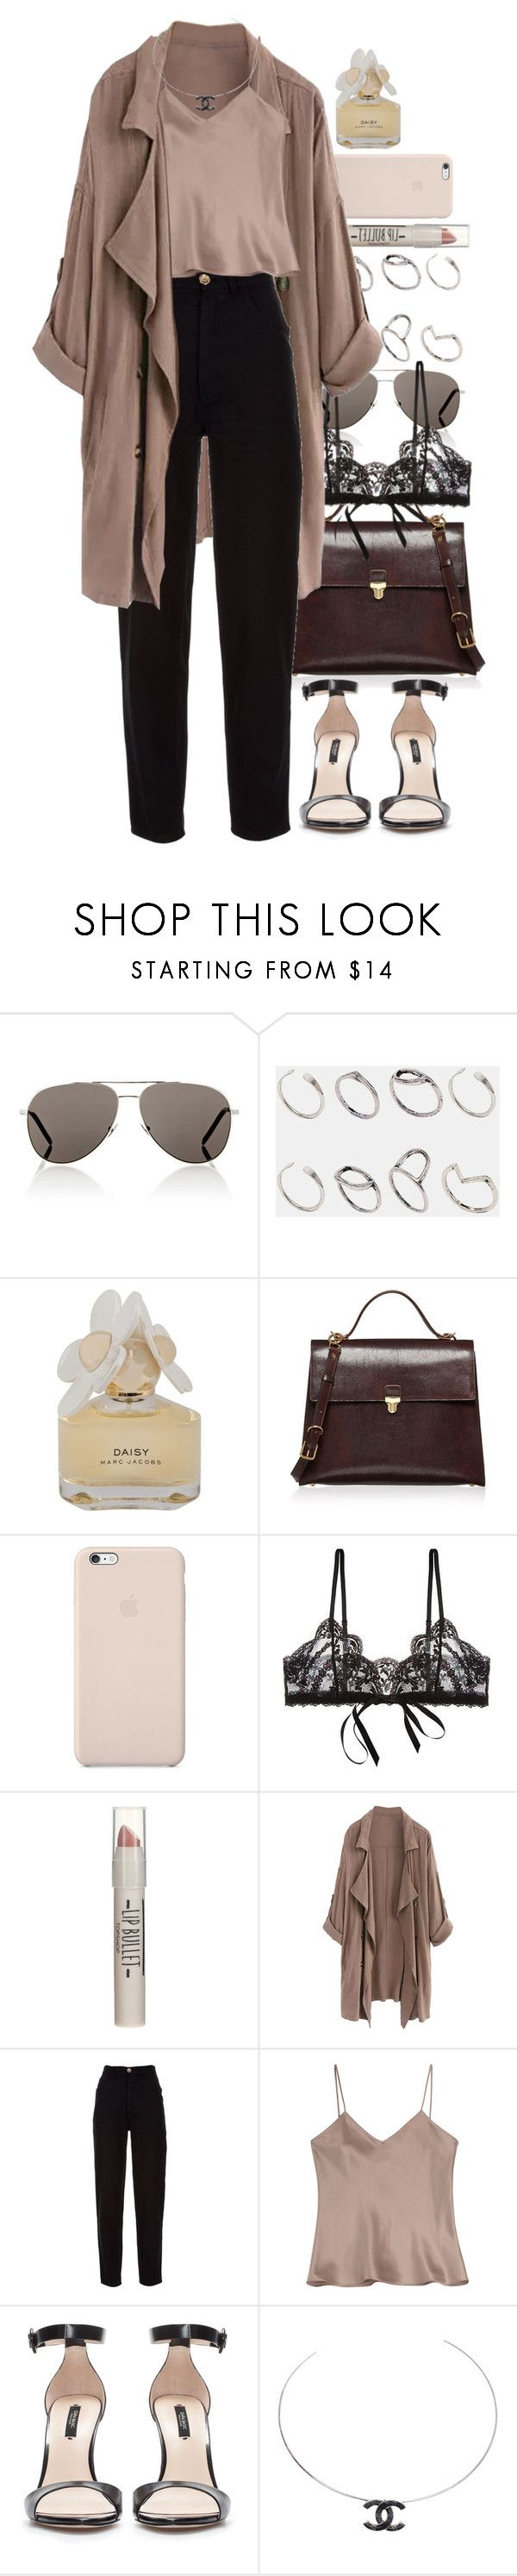 """Untitled #9414"" by nikka-phillips ❤ liked on Polyvore featuring Yves Saint La..."